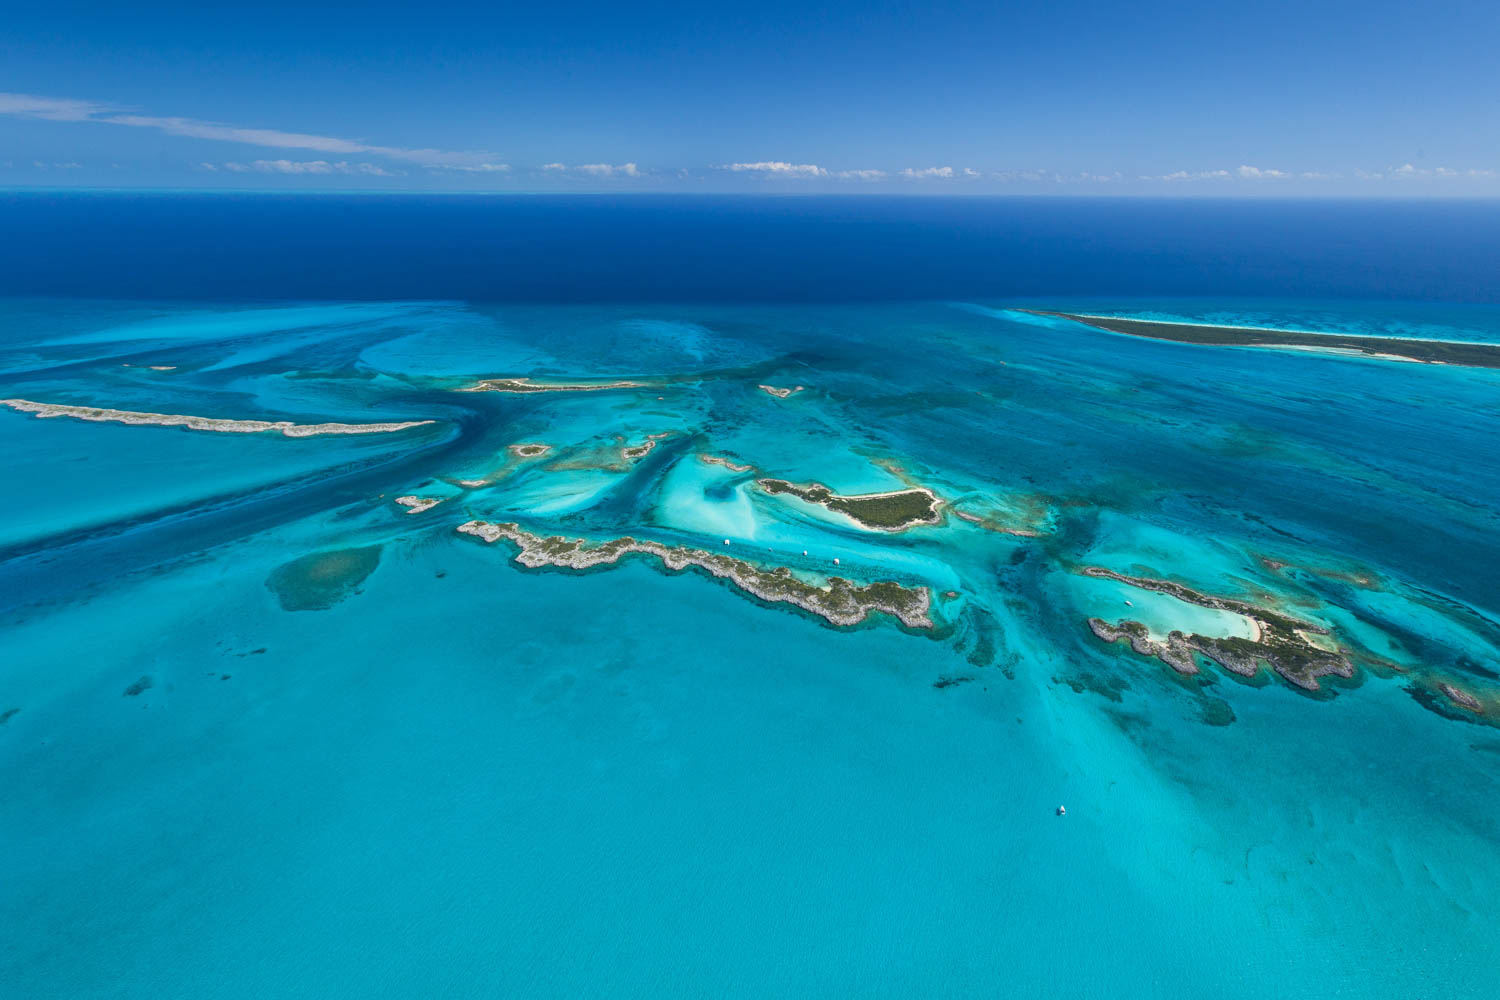 A Pig Island Bahamas tour lasts nearly all day from morning until evening. From Nassau Bahamas swim with pigs at Big Major Cay. A Pig Island from Nassau tour is a crowd favorite.